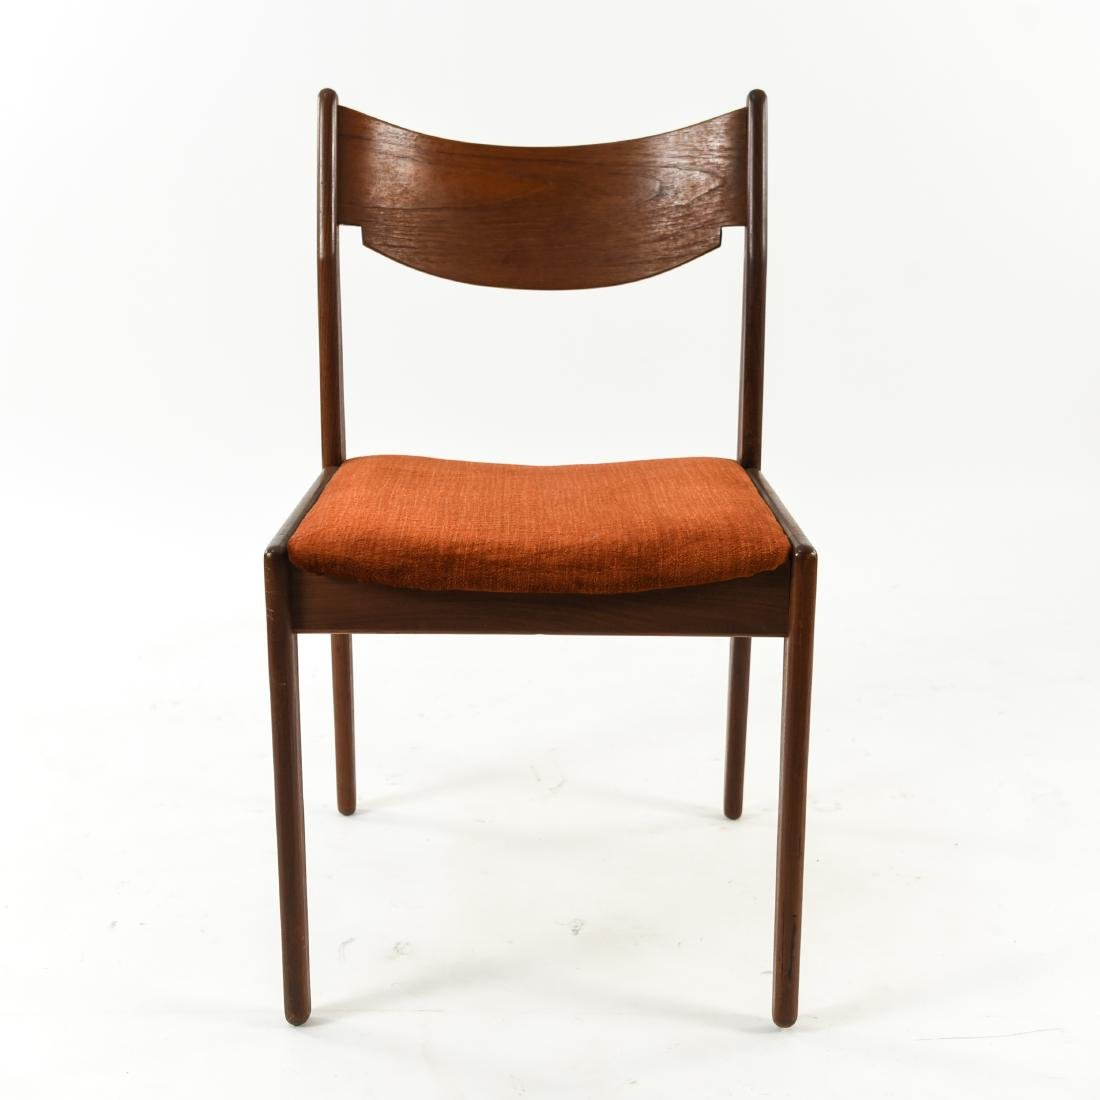 DANISH SIDE CHAIR